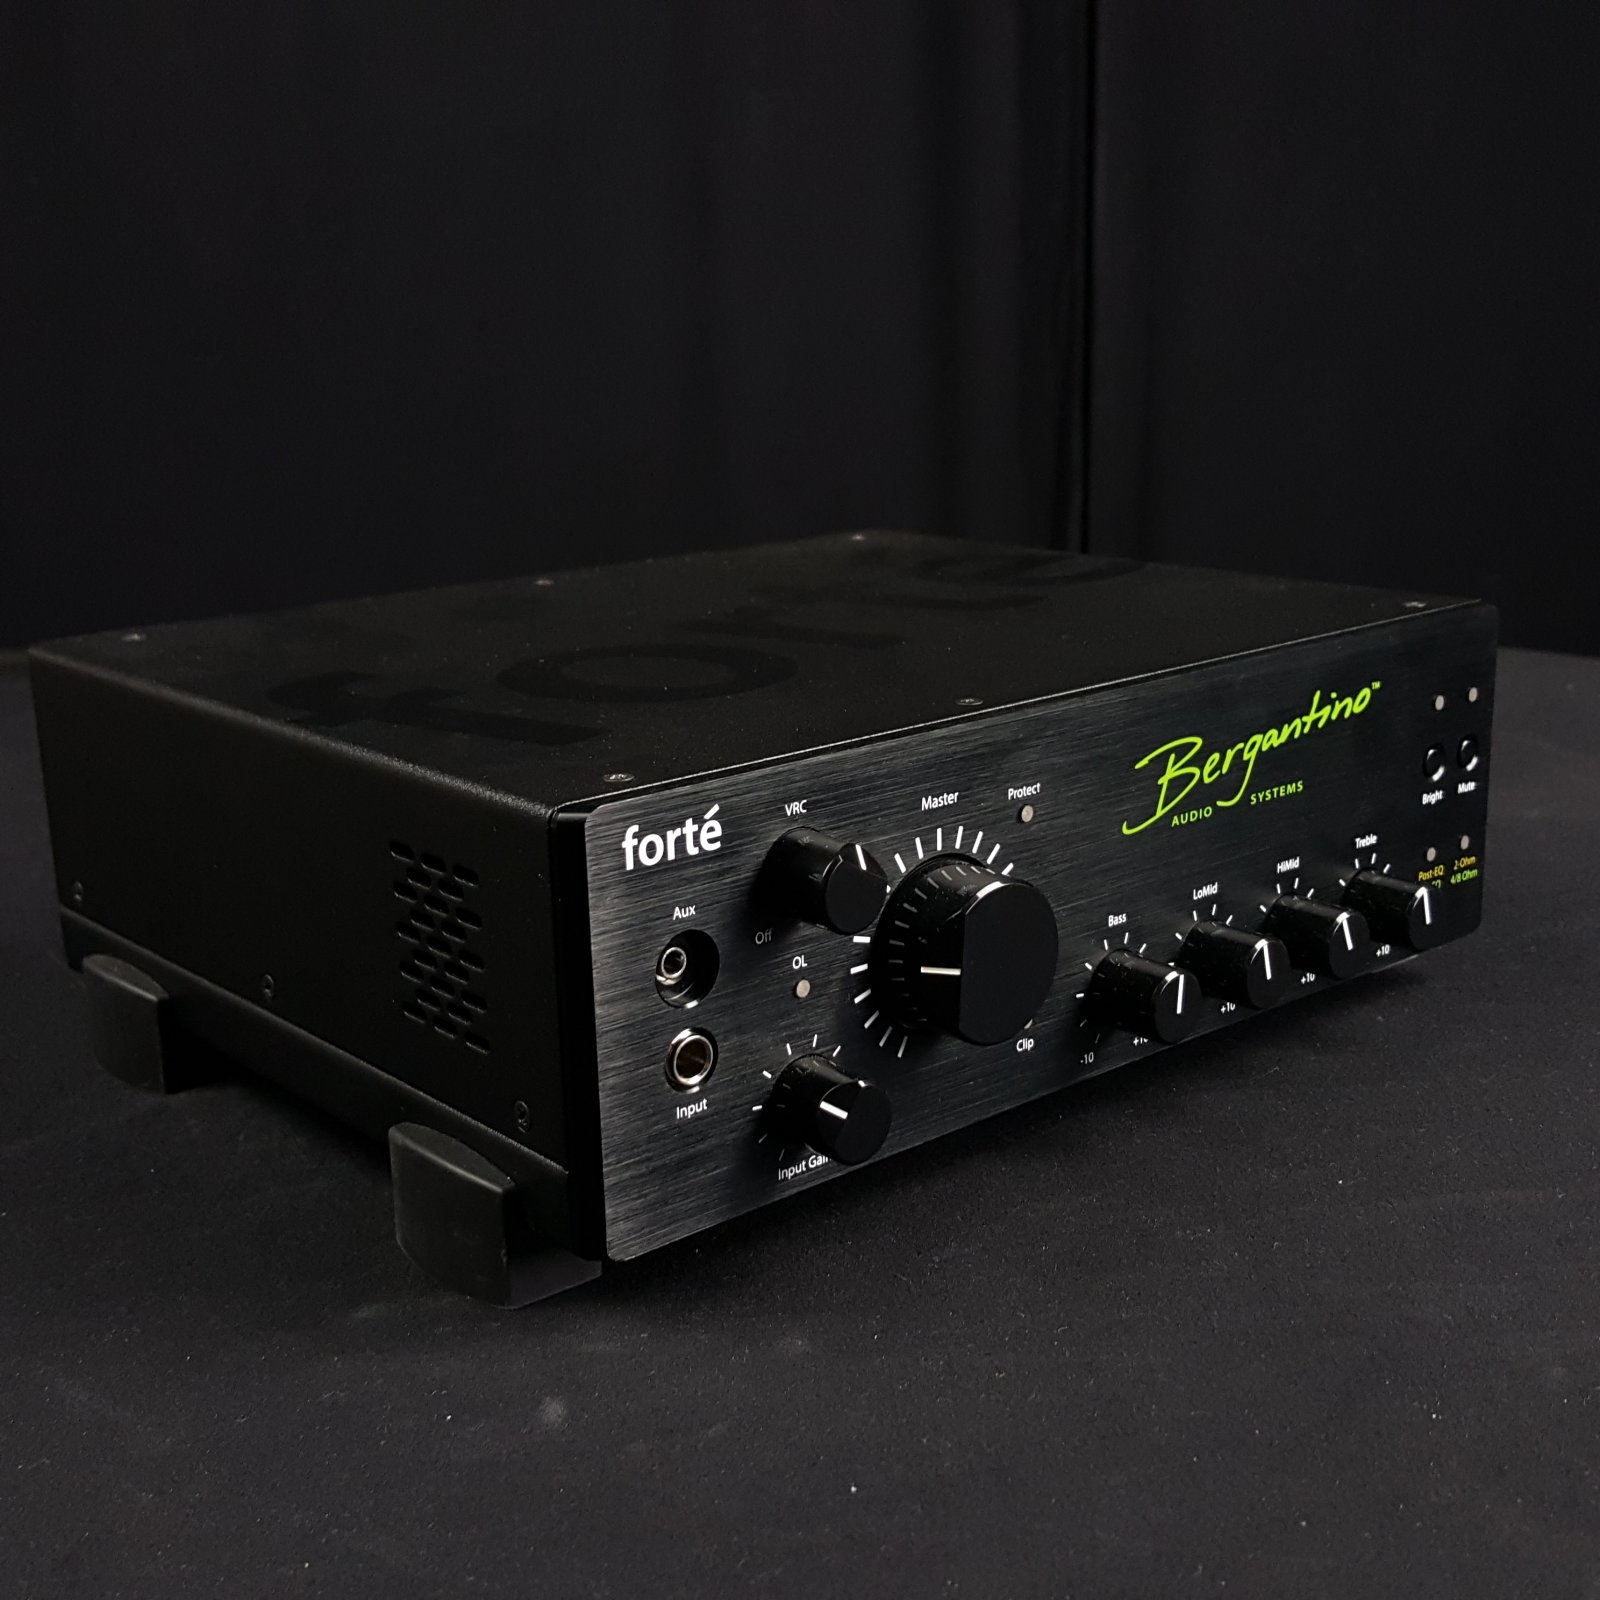 Bergantino Forte 700 Watt Digital Bass Amplifier